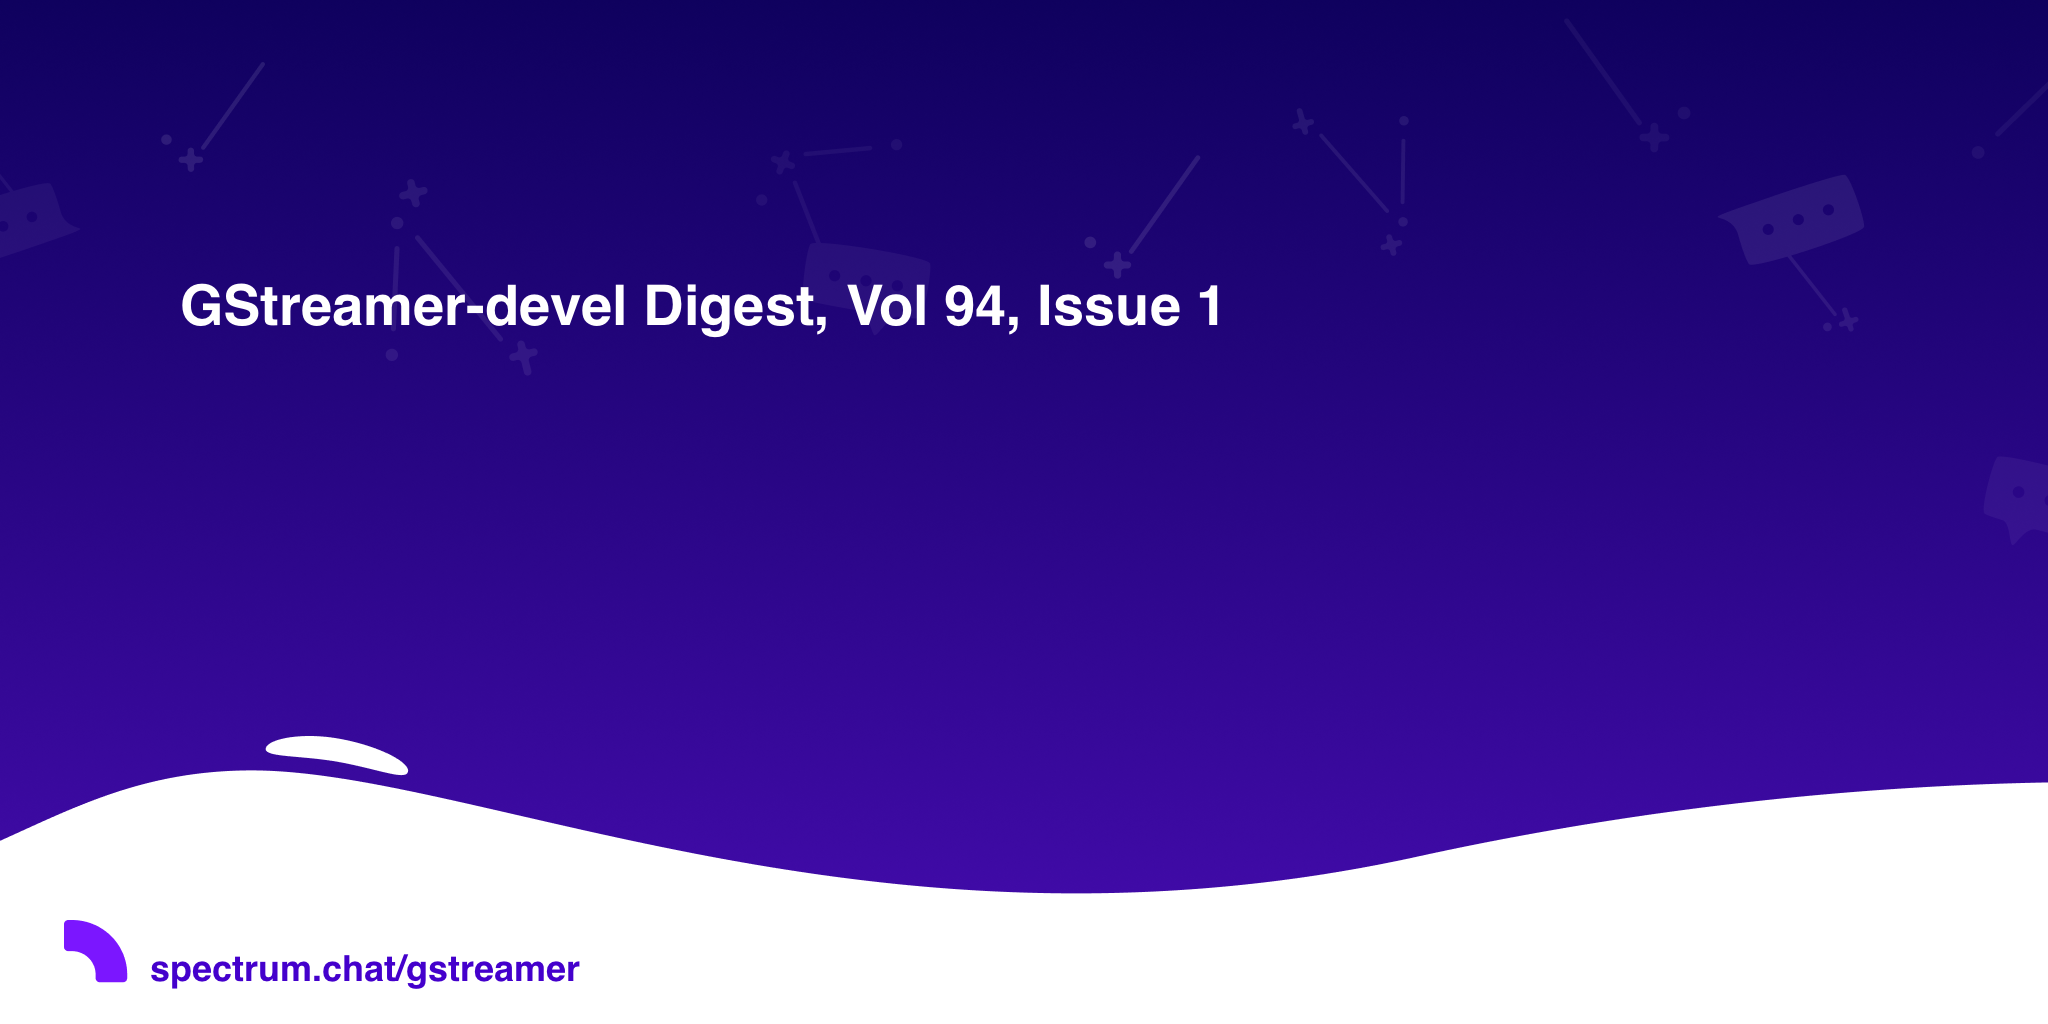 GStreamer-devel Digest, Vol 94, Issue 1 · GStreamer